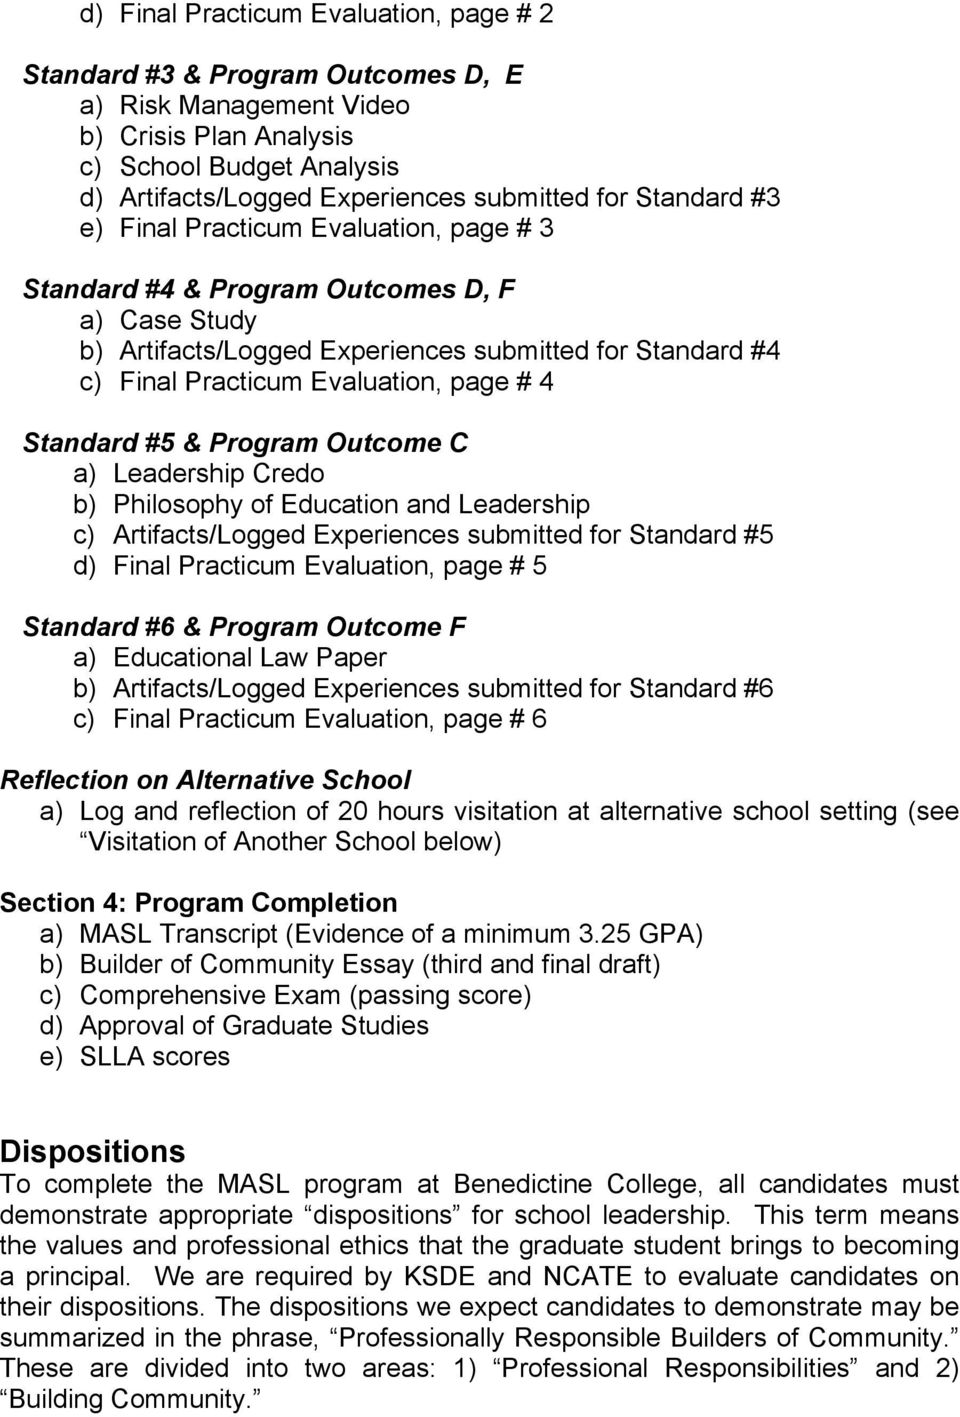 Standard #5 & Program Outcome C a) Leadership Credo b) Philosophy of Education and Leadership c) Artifacts/Logged Experiences submitted for Standard #5 d) Final Practicum Evaluation, page # 5